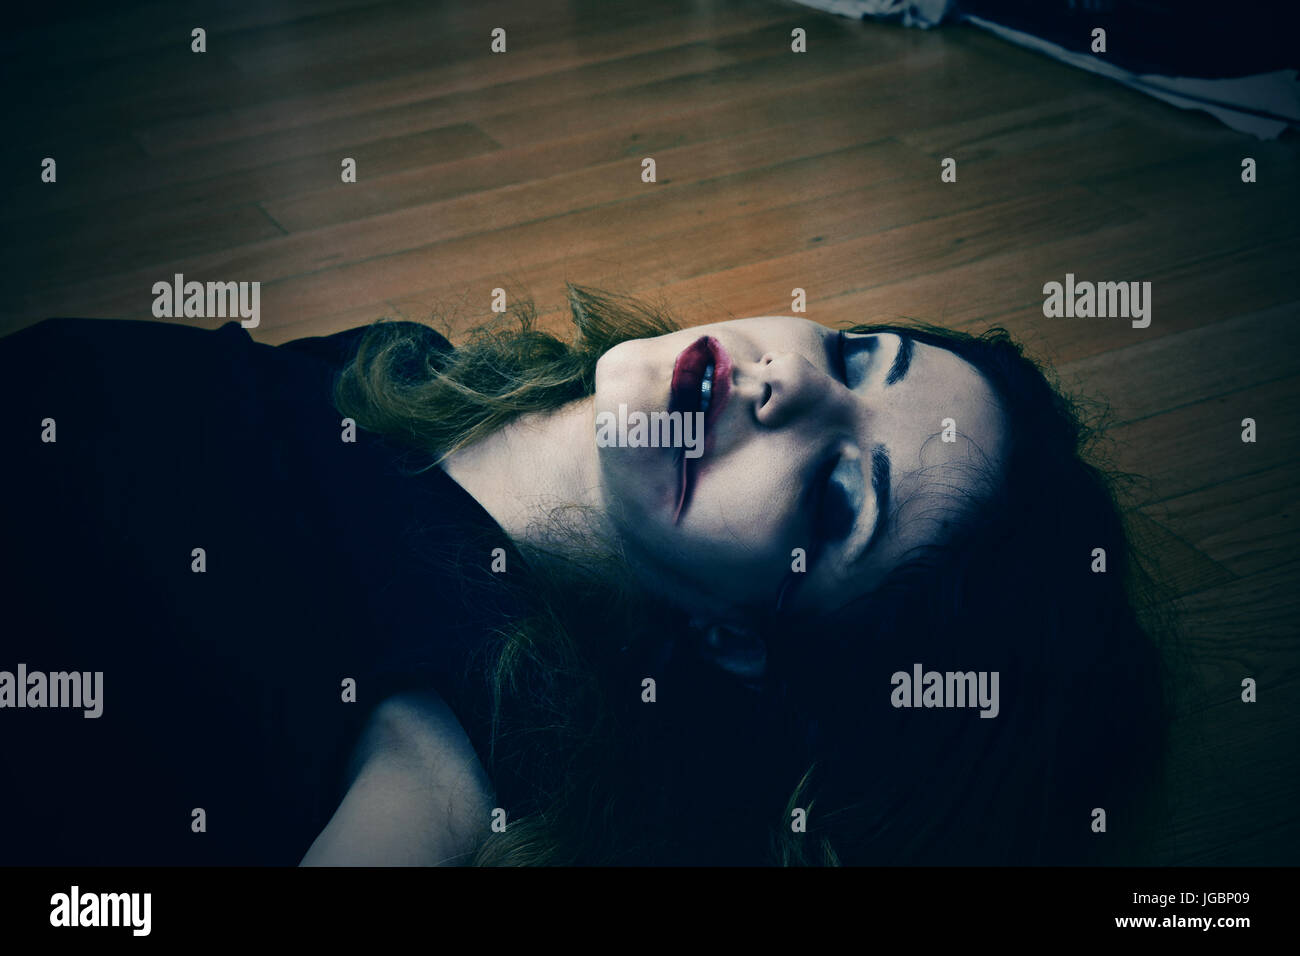 Dead girl on the floor with blood from her mouth and nose - Stock Image